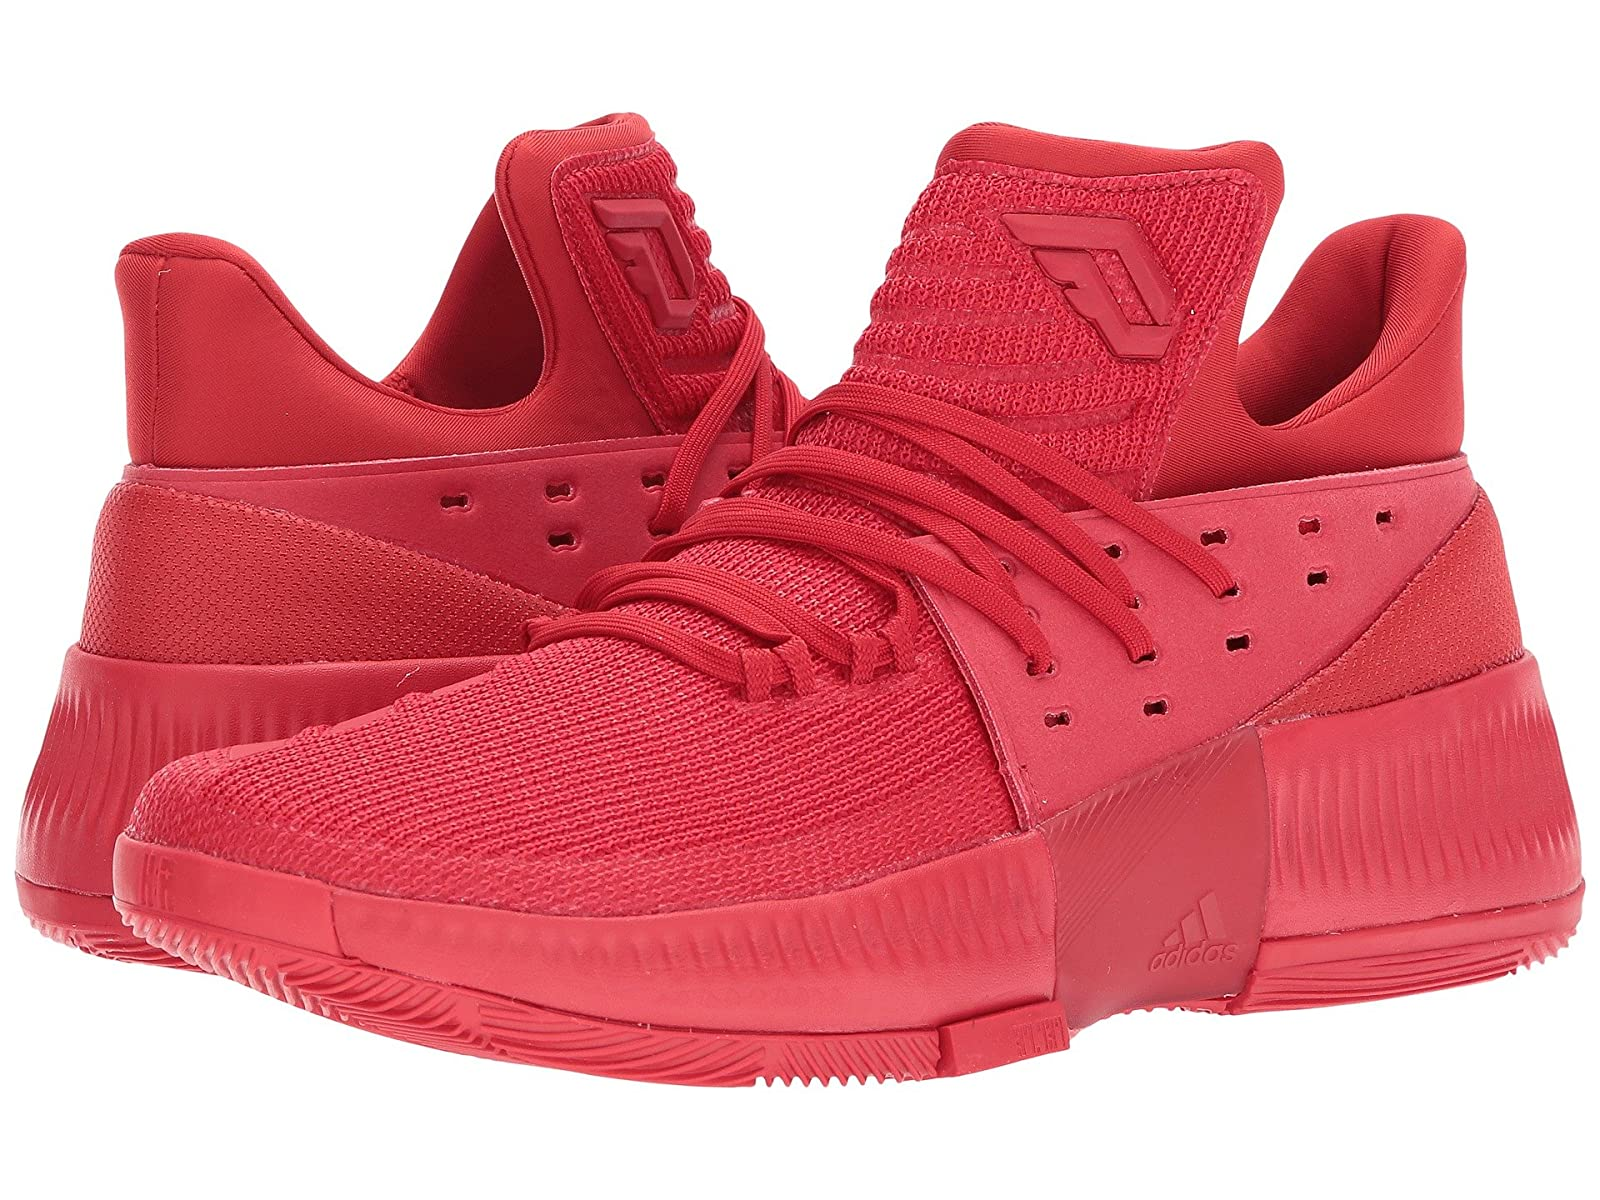 adidas Dame 3Stylish and characteristic shoes